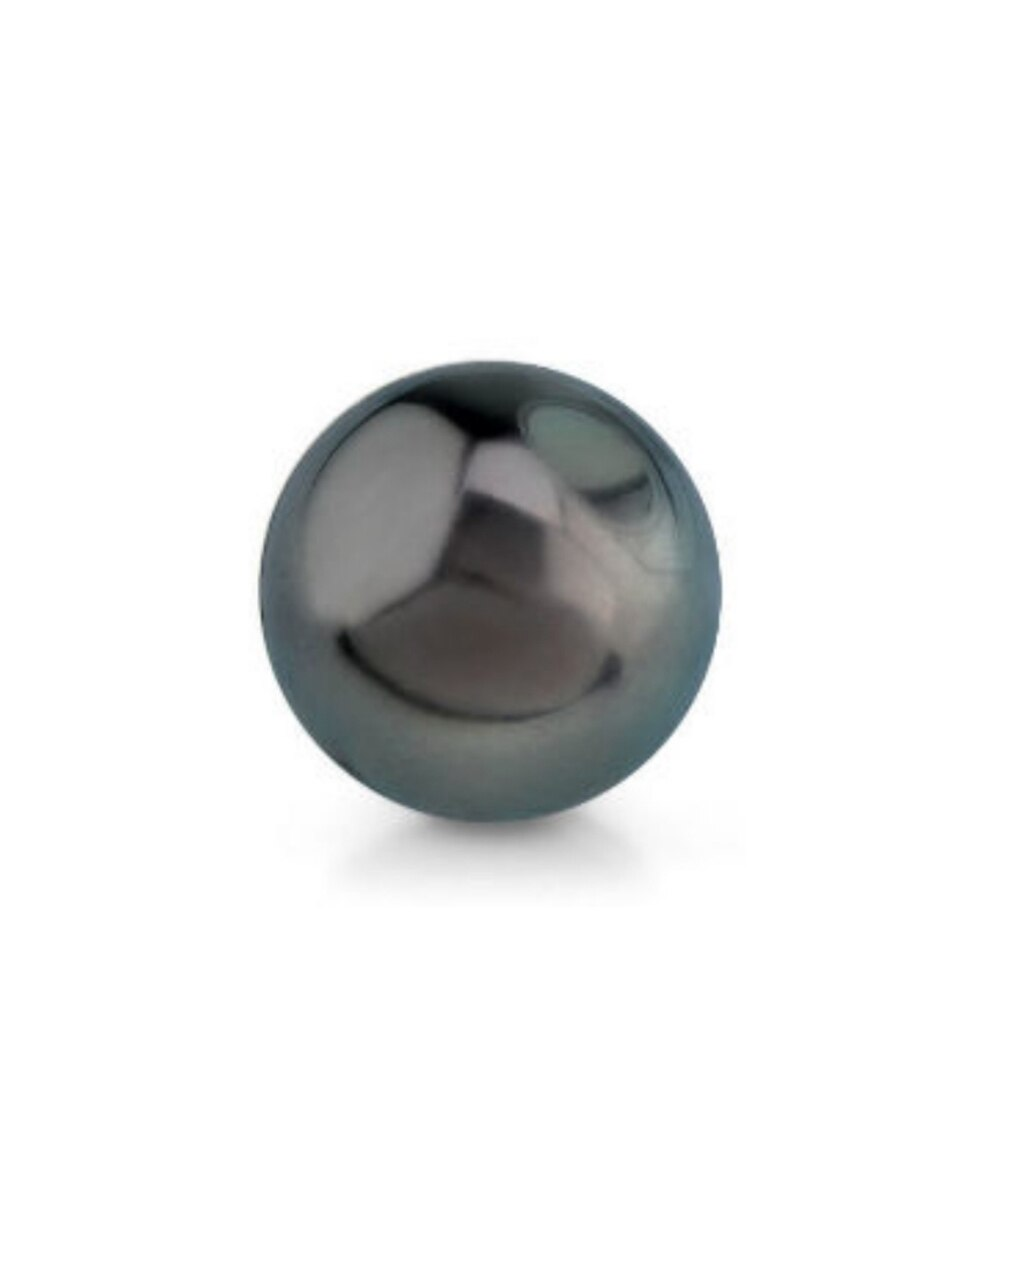 This loose Tahitian South Sea pearl is 10.0mm in size